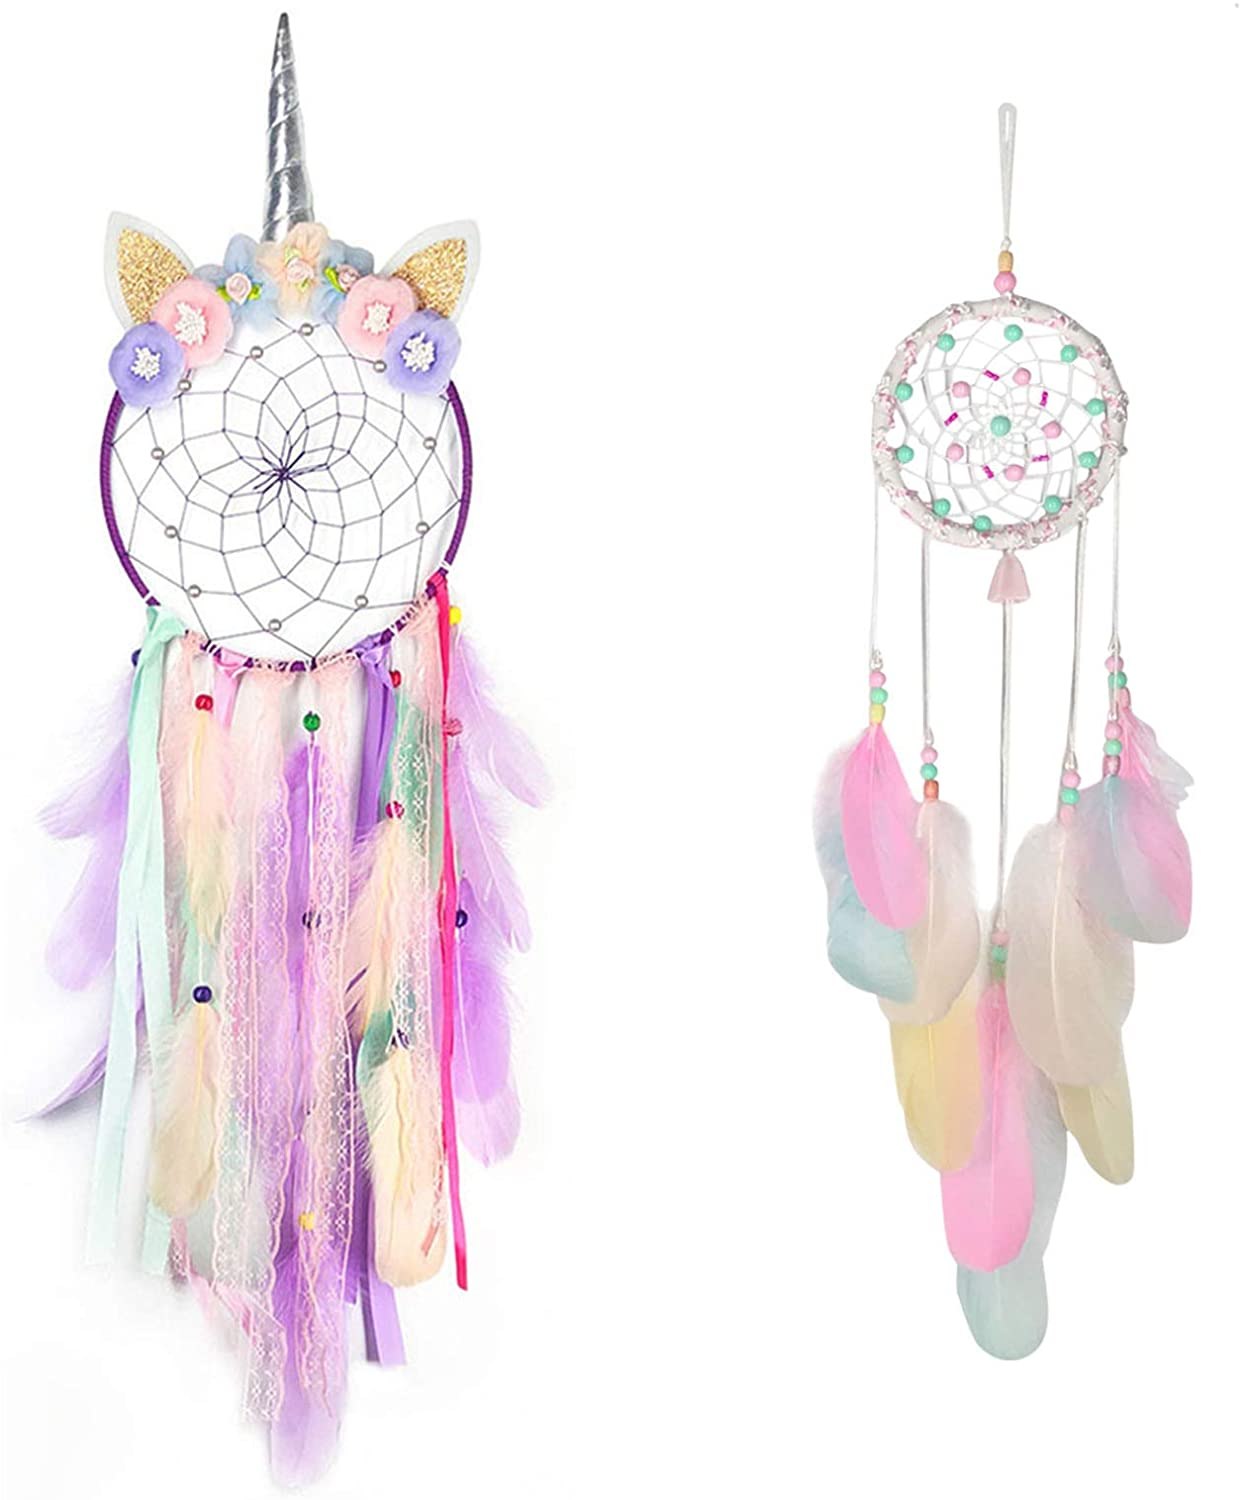 Rozwkeo 2 pcs Unicorn Dream Catcher for Girls Room Baby Teen Kids Bedroom Decor Pink Cute Dream Catcher Wall Hanging Decoration with Feather Flower for Nursery Baby Shower Ornament Festival Gift